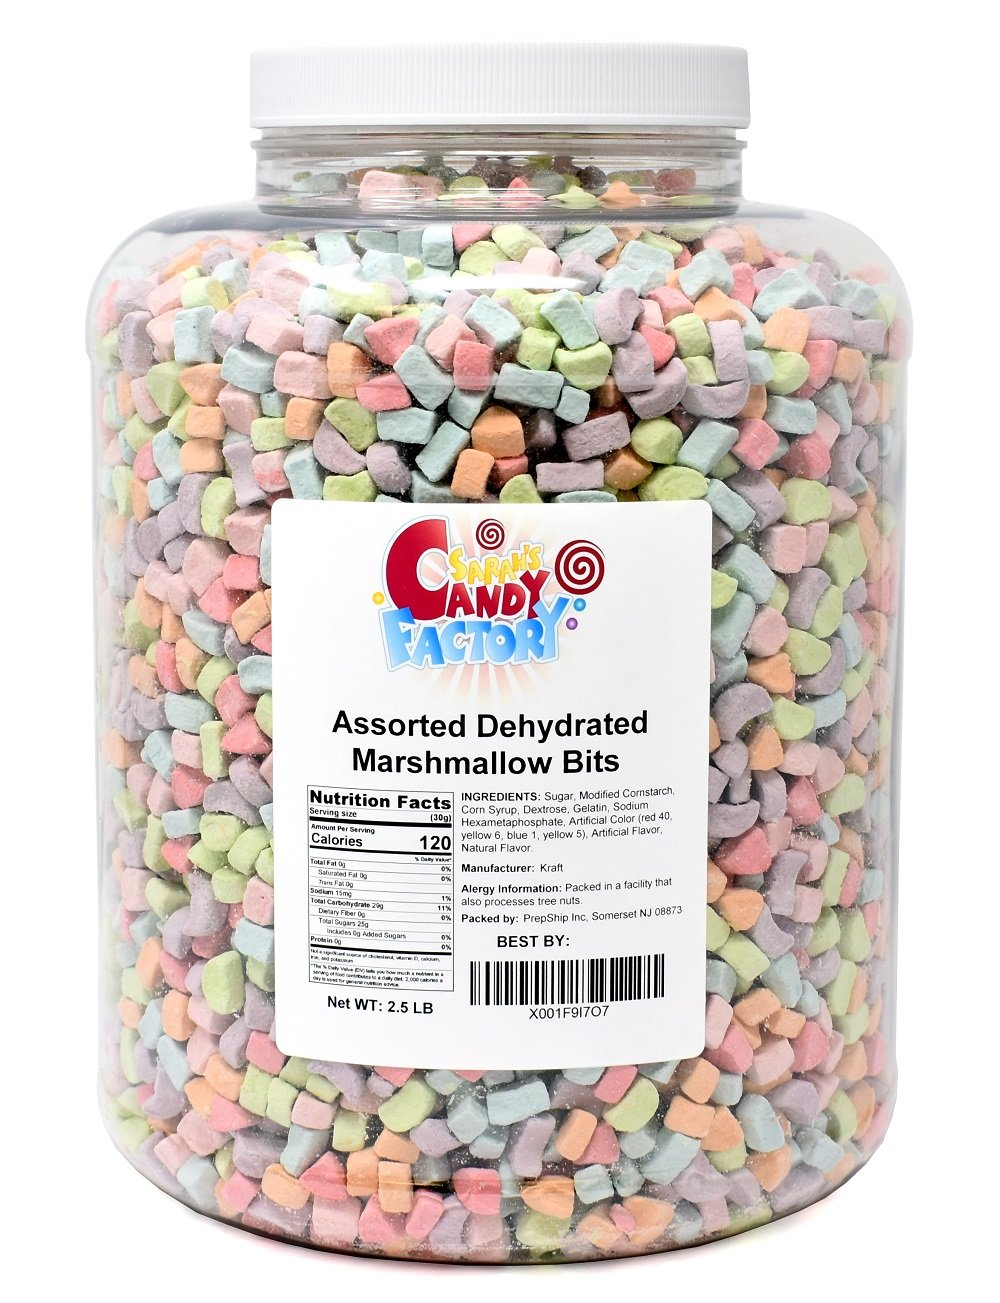 Assorted Dehydrated Marshmallow Bits in Jar, 2.5 Pounds by Sarah's Candy Factory